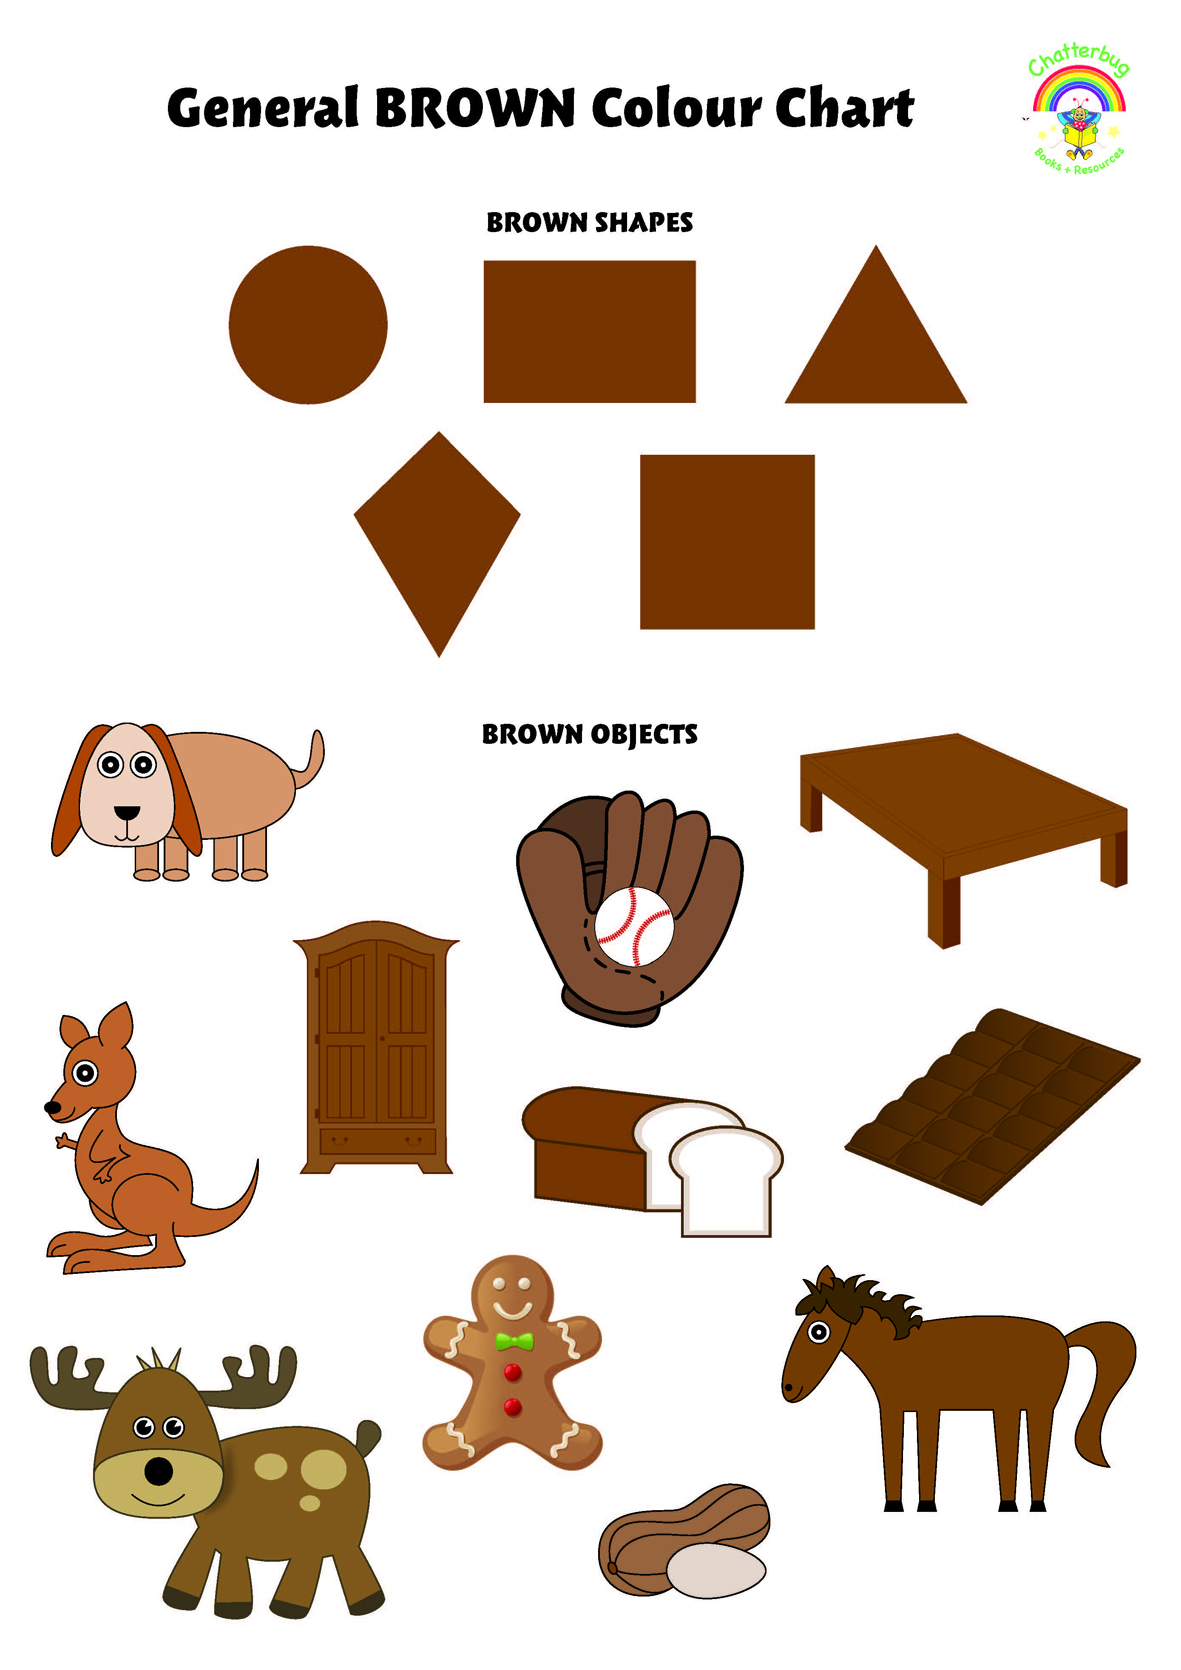 Brown Colour Chart